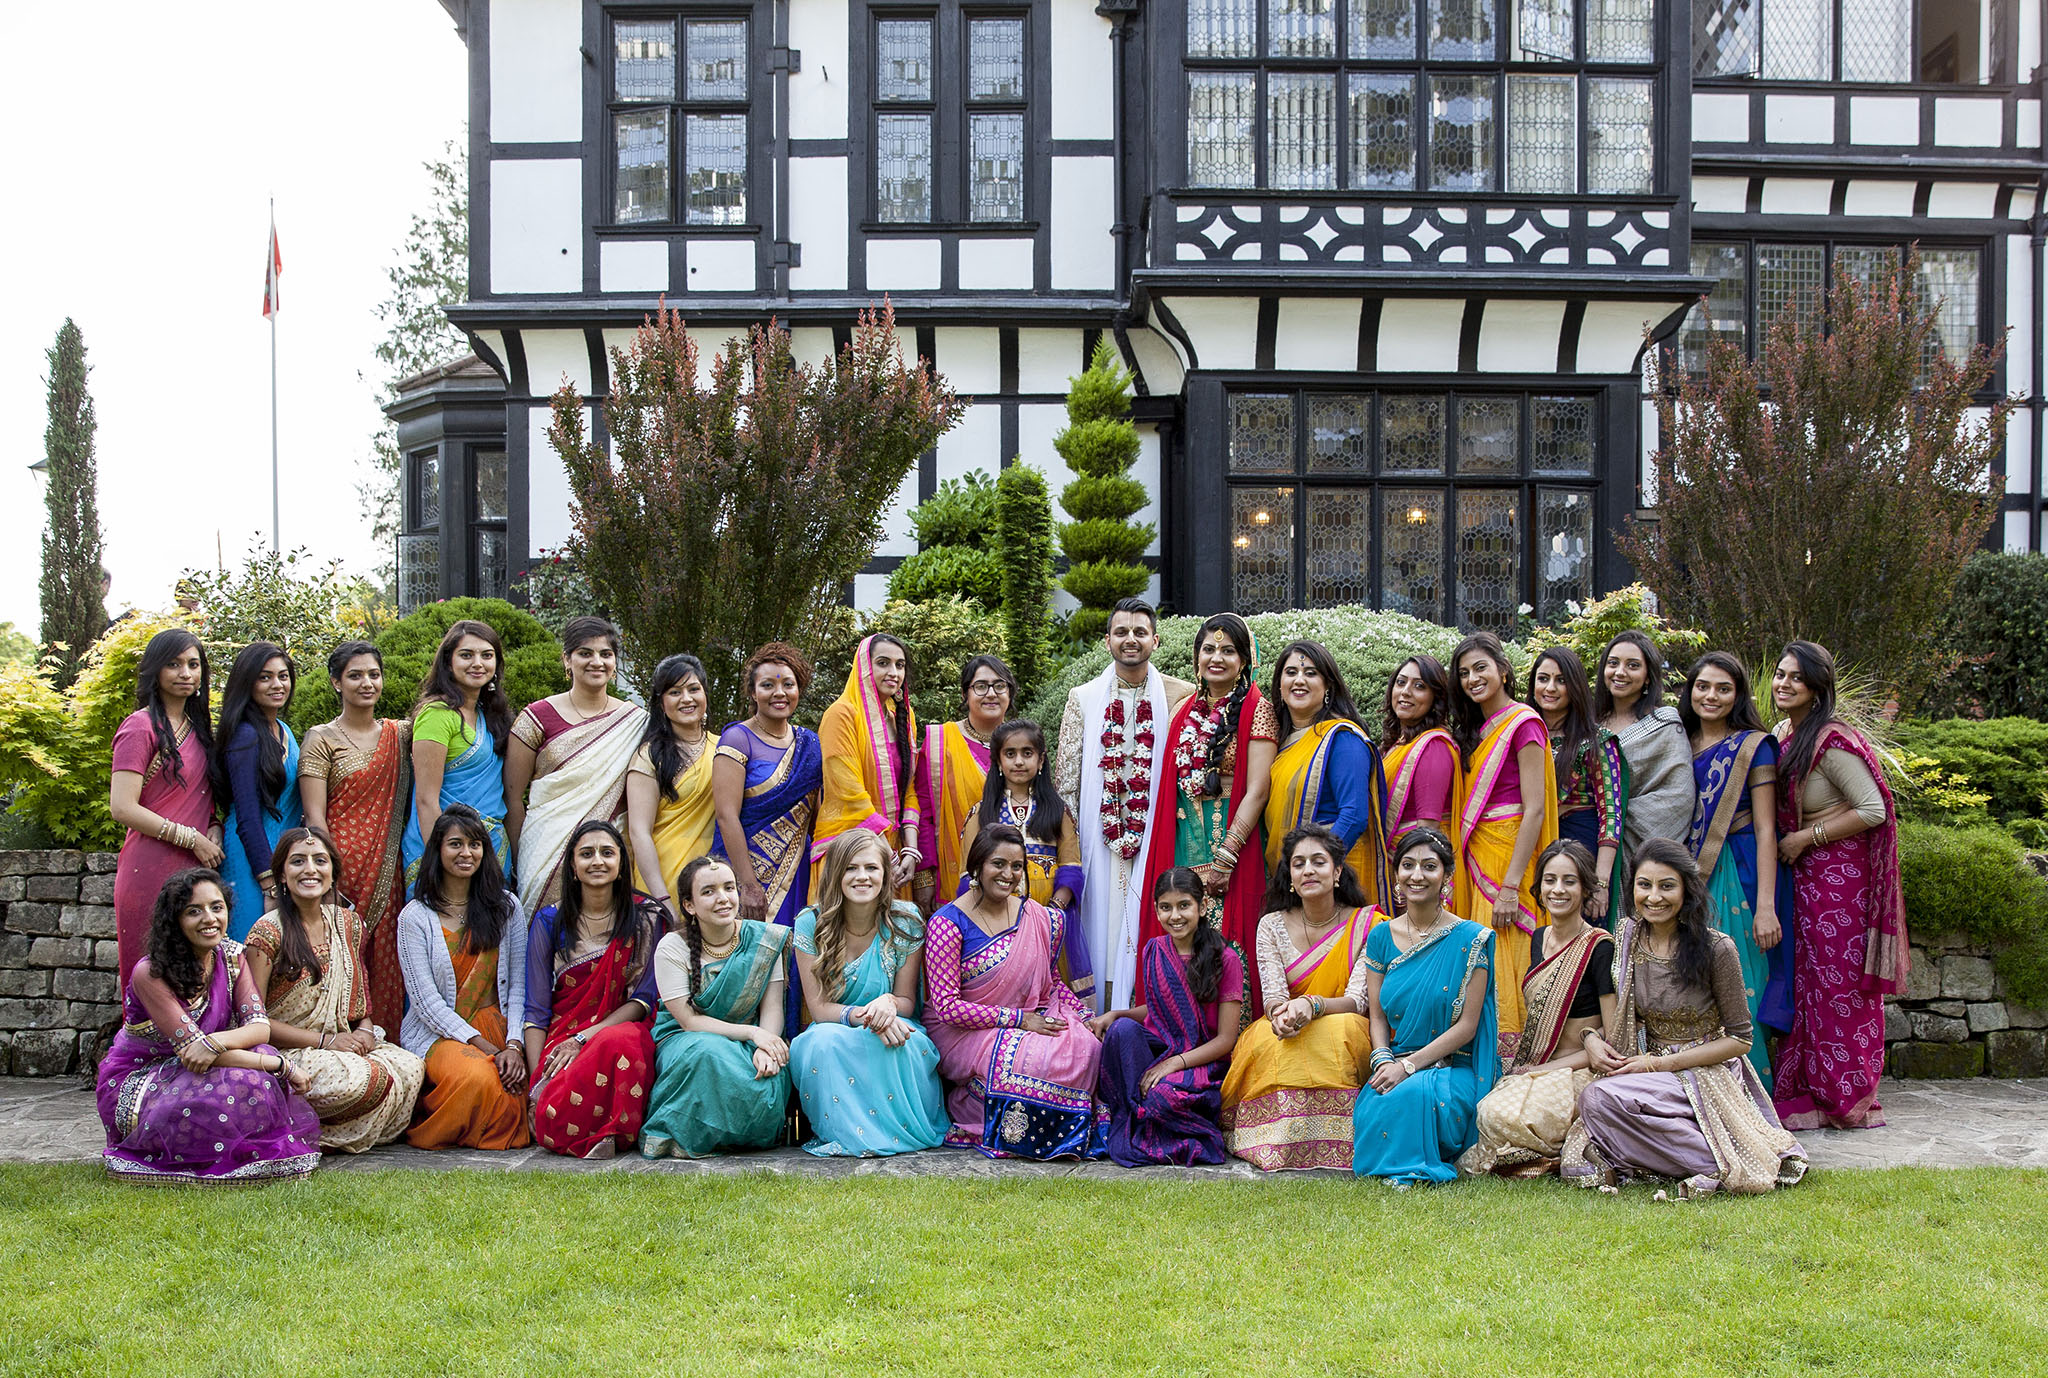 elizabethgphotography_kingslangley_hertfordshire_fineart_indian_wedding_photography_jigna_bhuja_bhaktivedanta_manor_watford_32.jpg